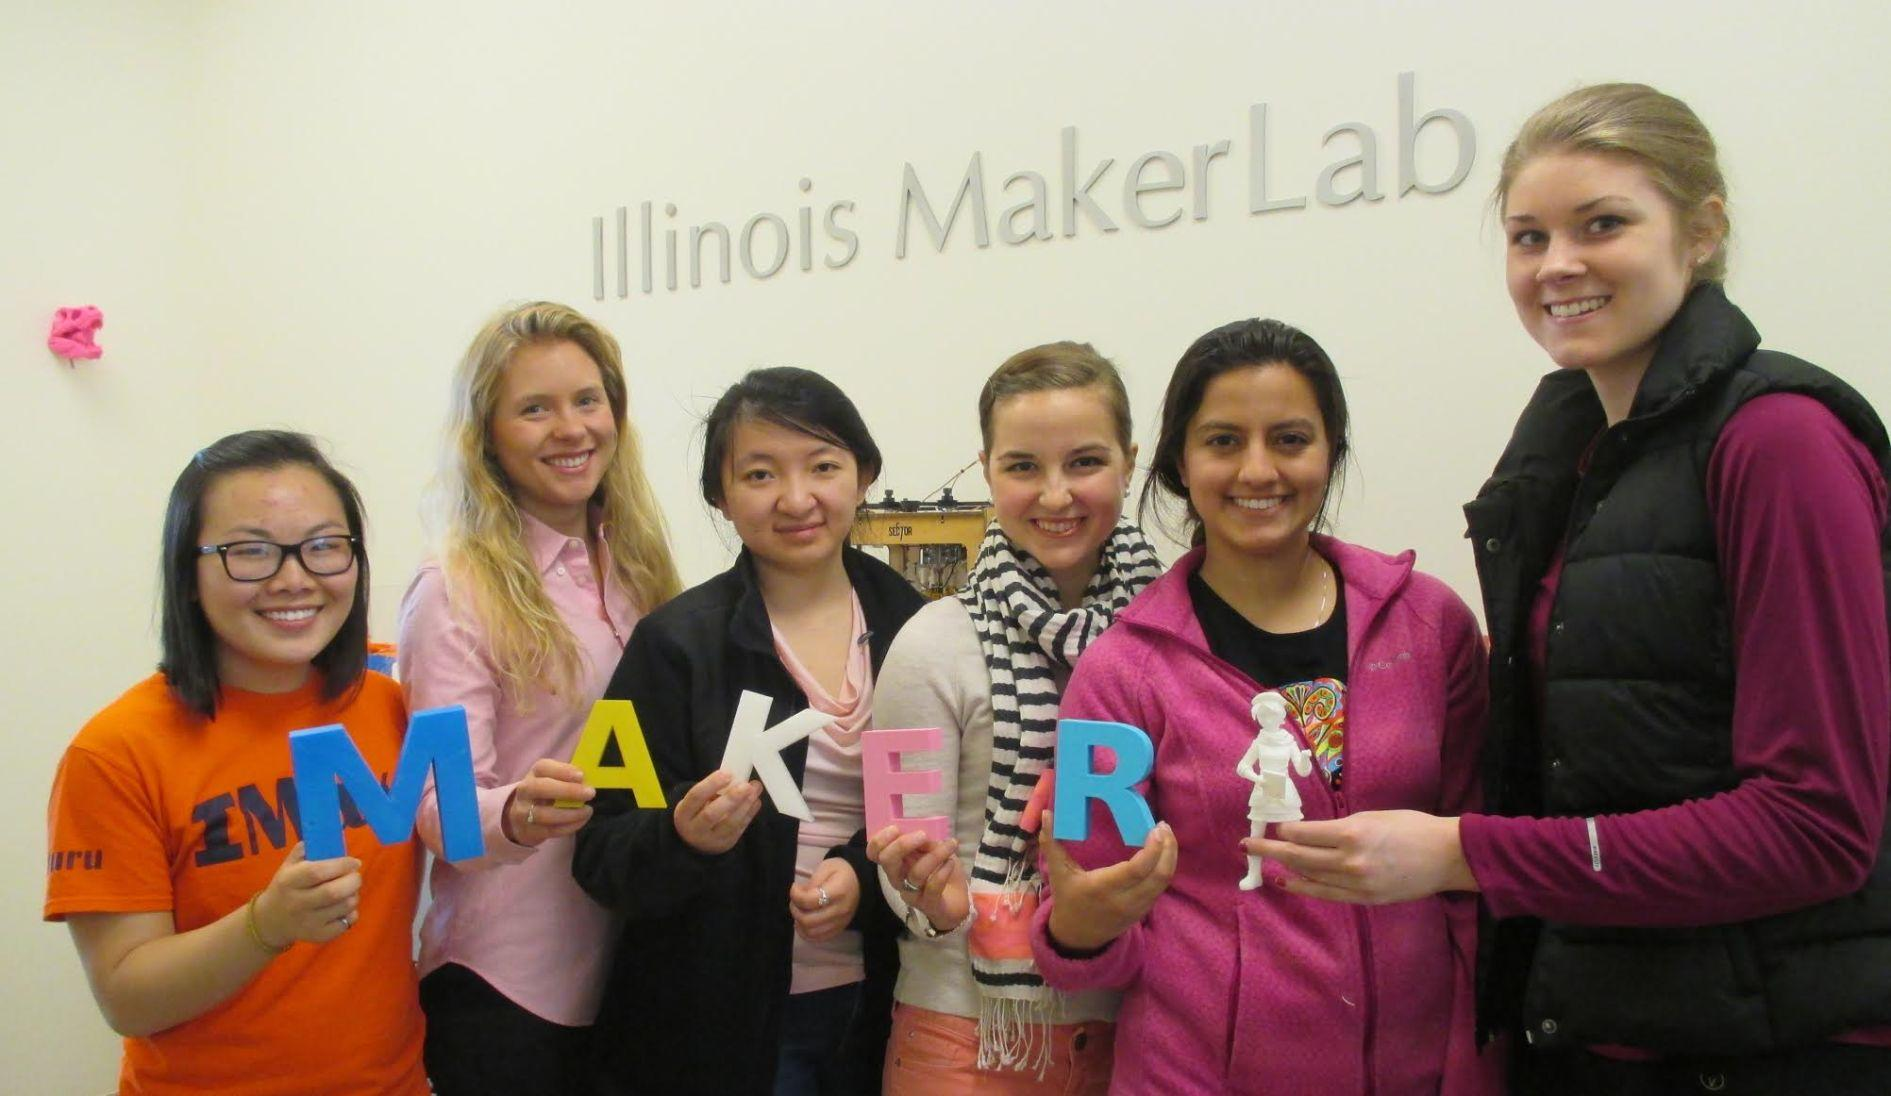 Winnie Yang, Julia Haried, Sophie Li, Elizabeth Engele, Sona Kaul and Caitlyn Deegan, members of the MakerGirl team, pose for a photograph in the Illinois MakerLab.